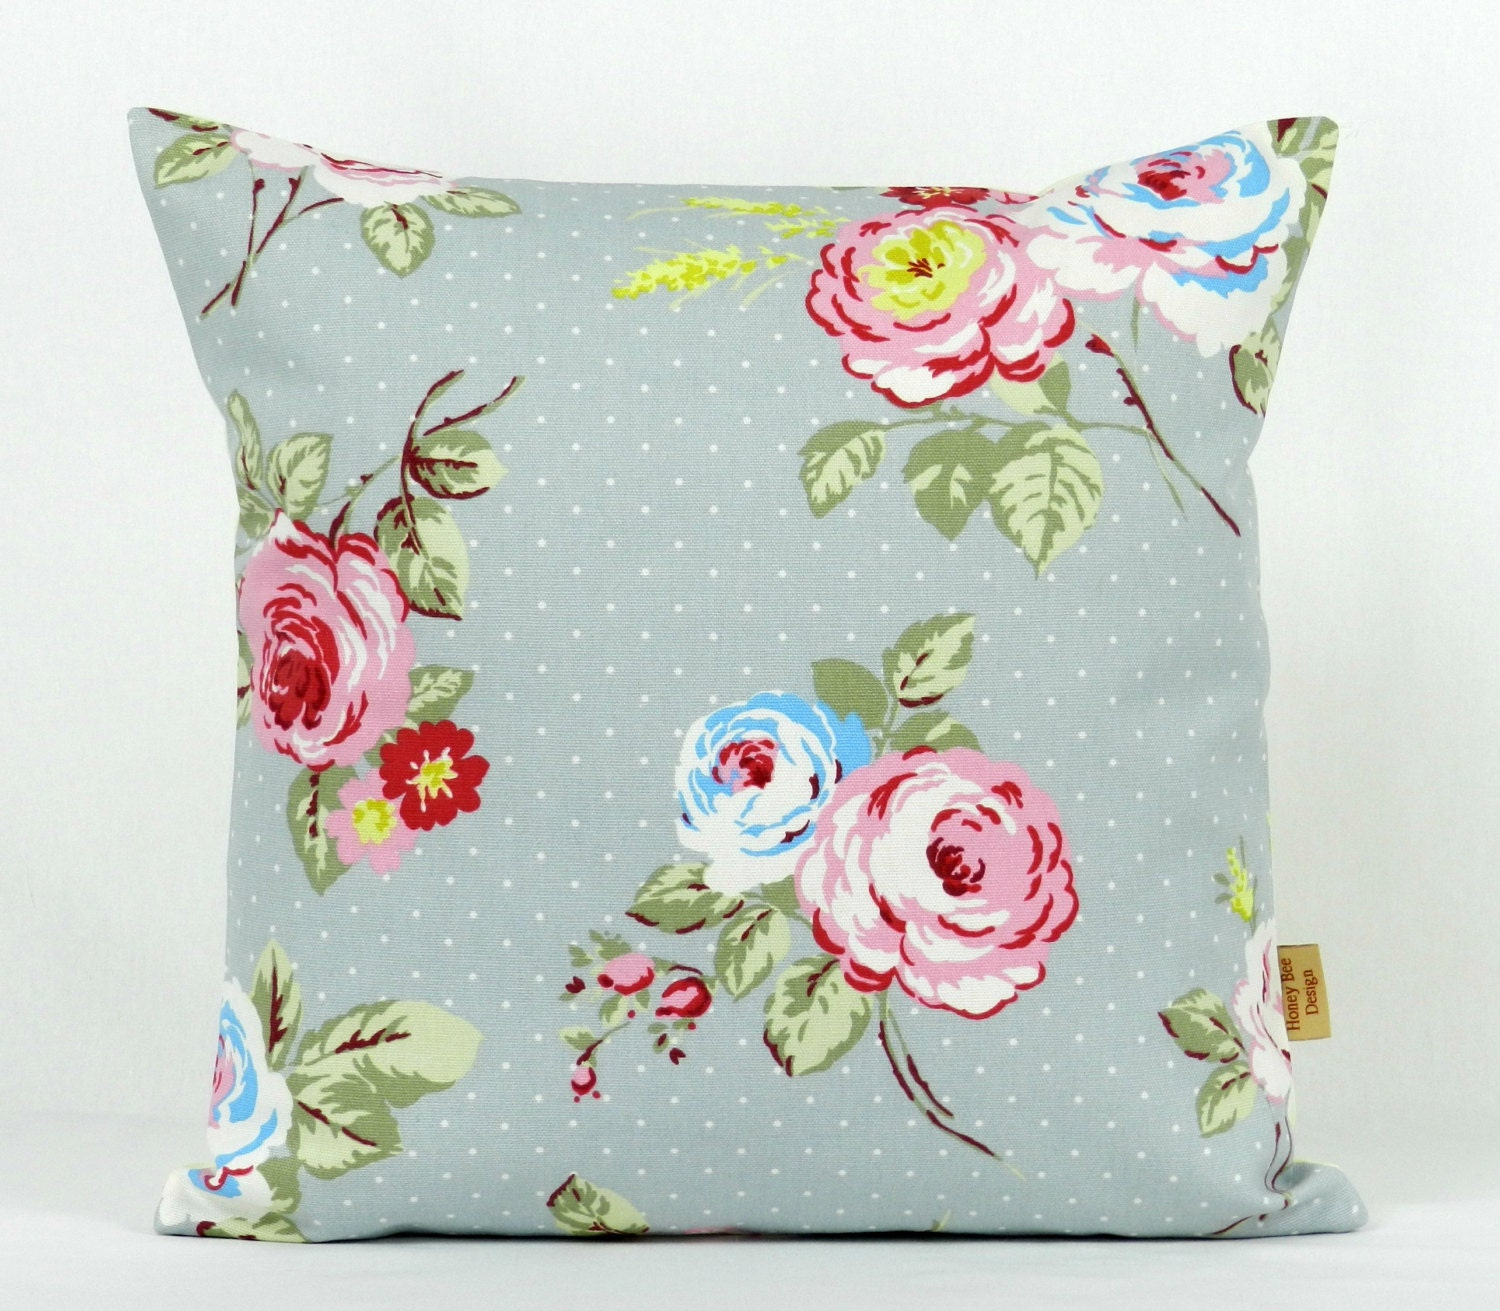 Throw Pillow Euro Sham : 26x26 euro sham pillow cover Throw Pillow Cover Decorative